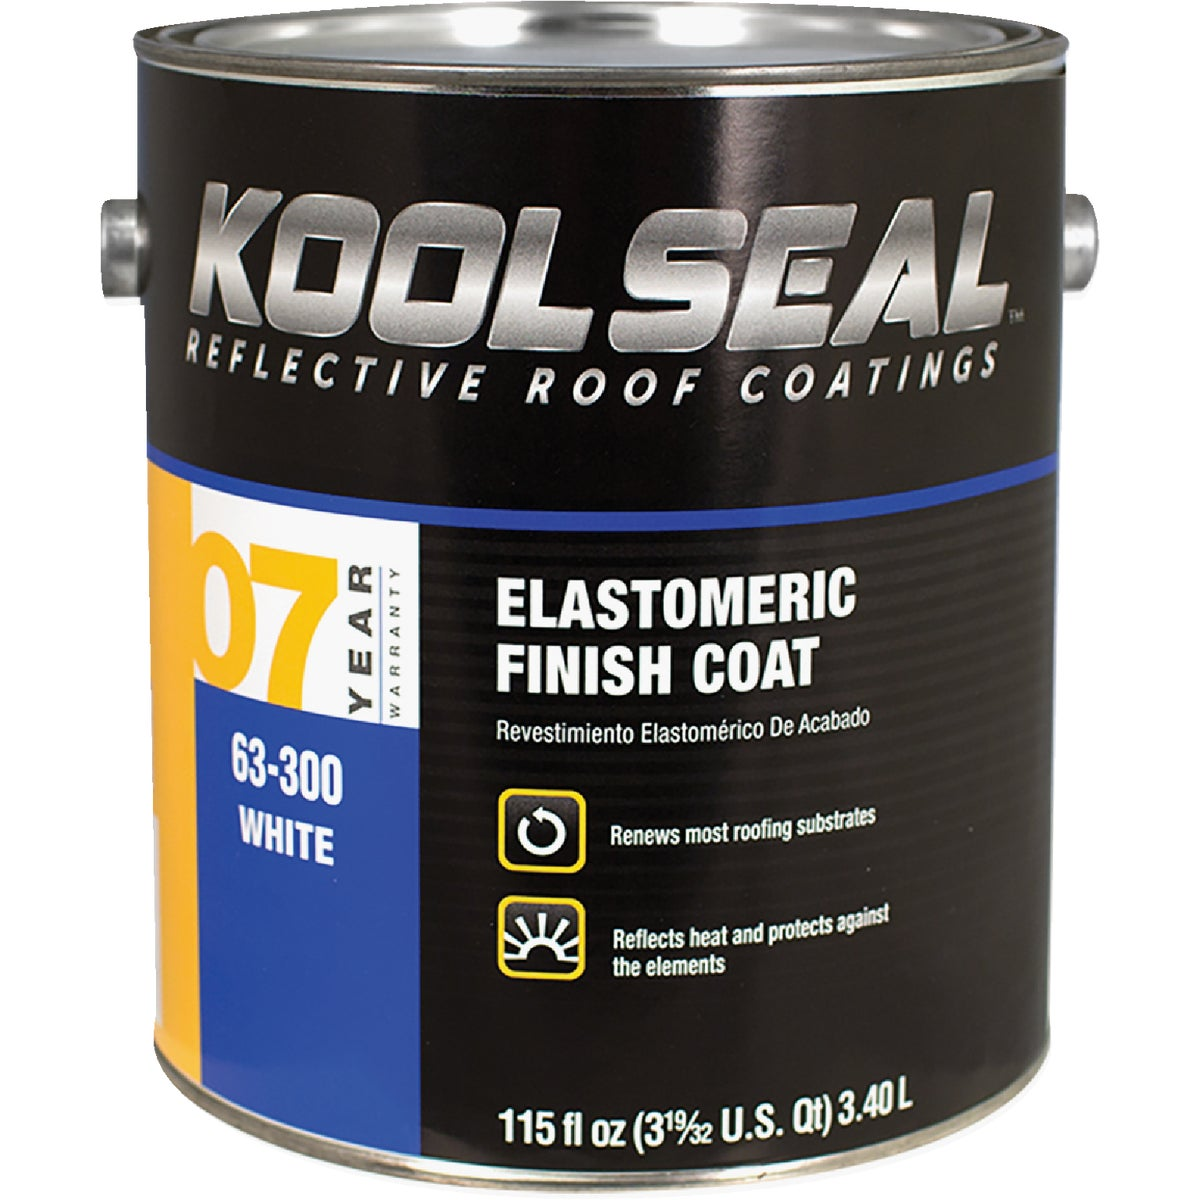 GAL ELASTOMRC RF COATING